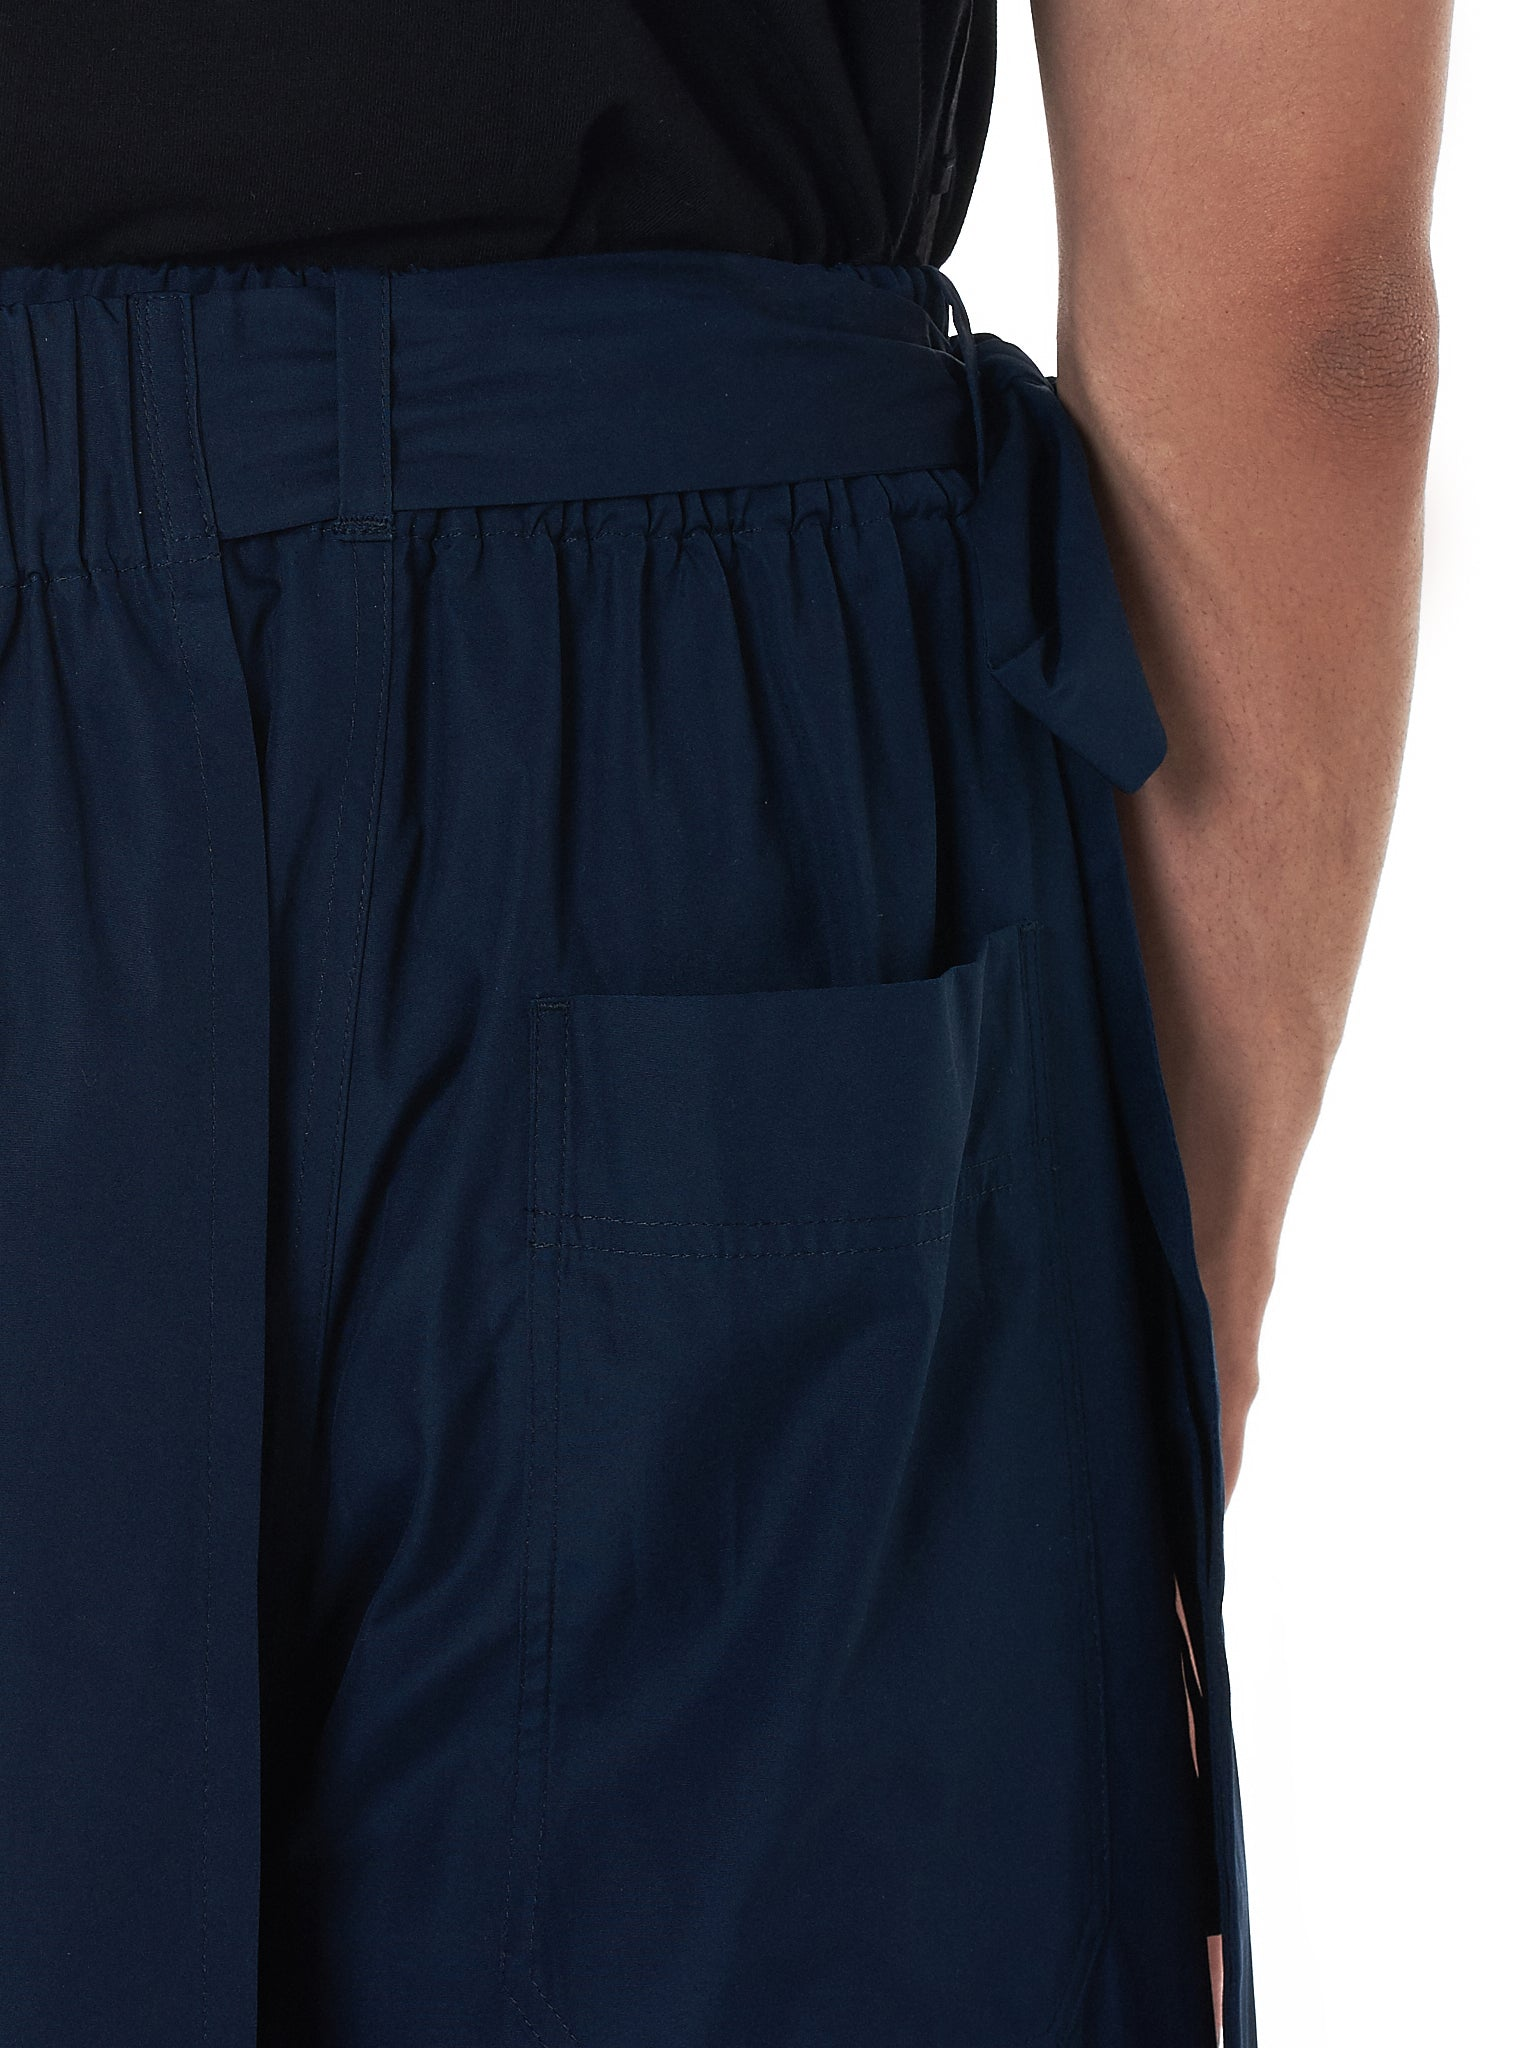 Craig Green Shorts - Hlorenzo Detail 3